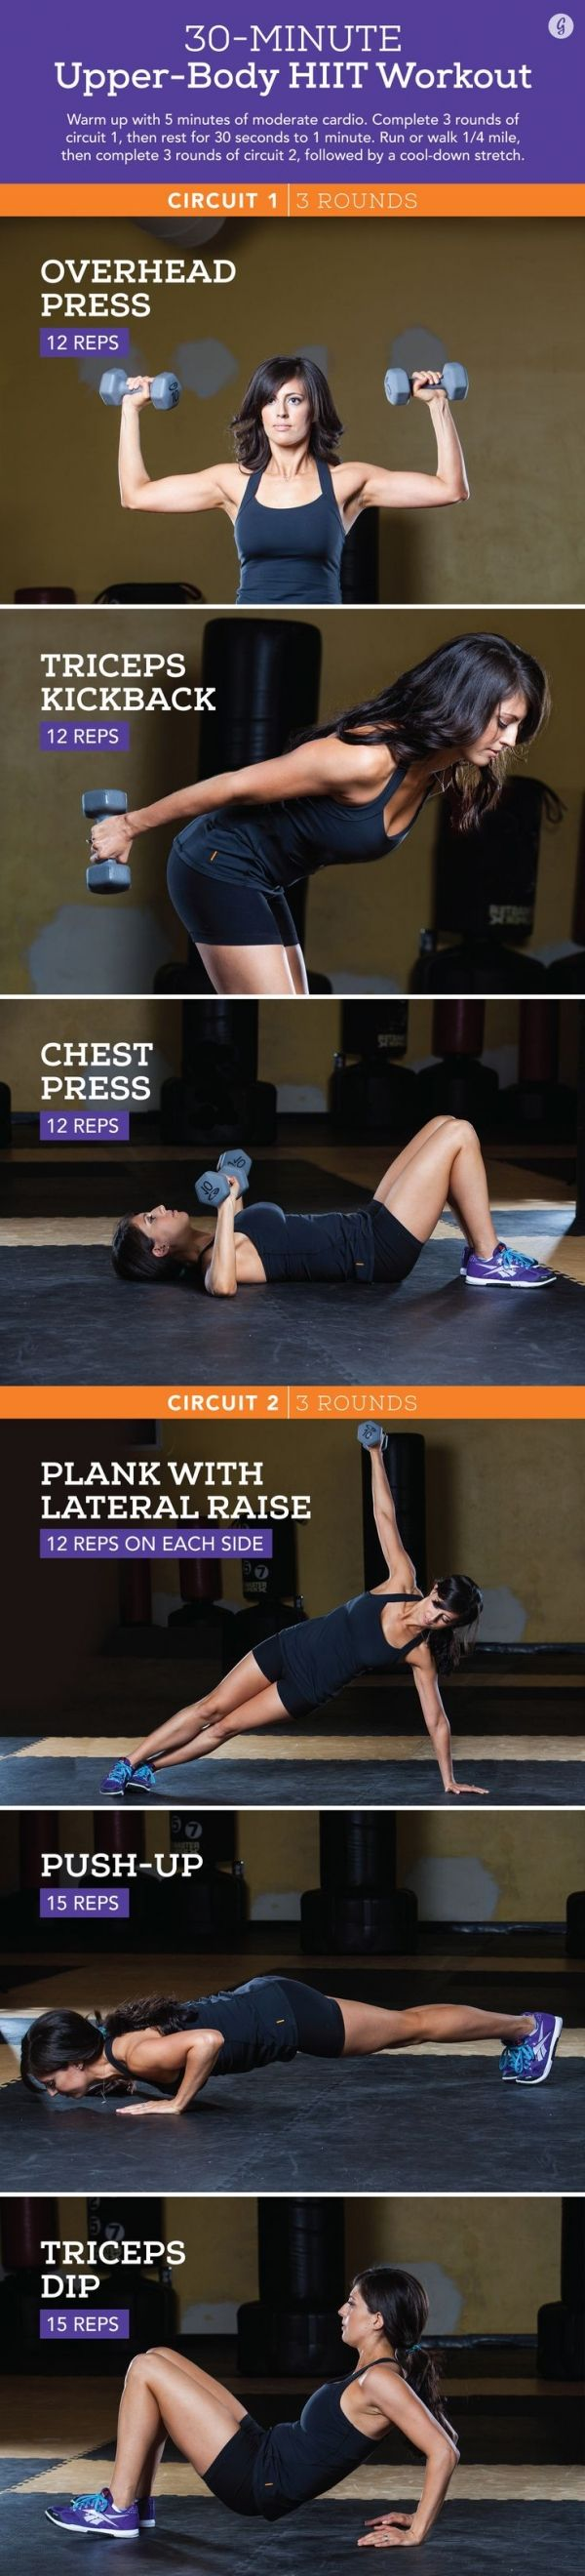 It's Only Half an Hour! Let's Check out These 27 30-Minute Workouts ...